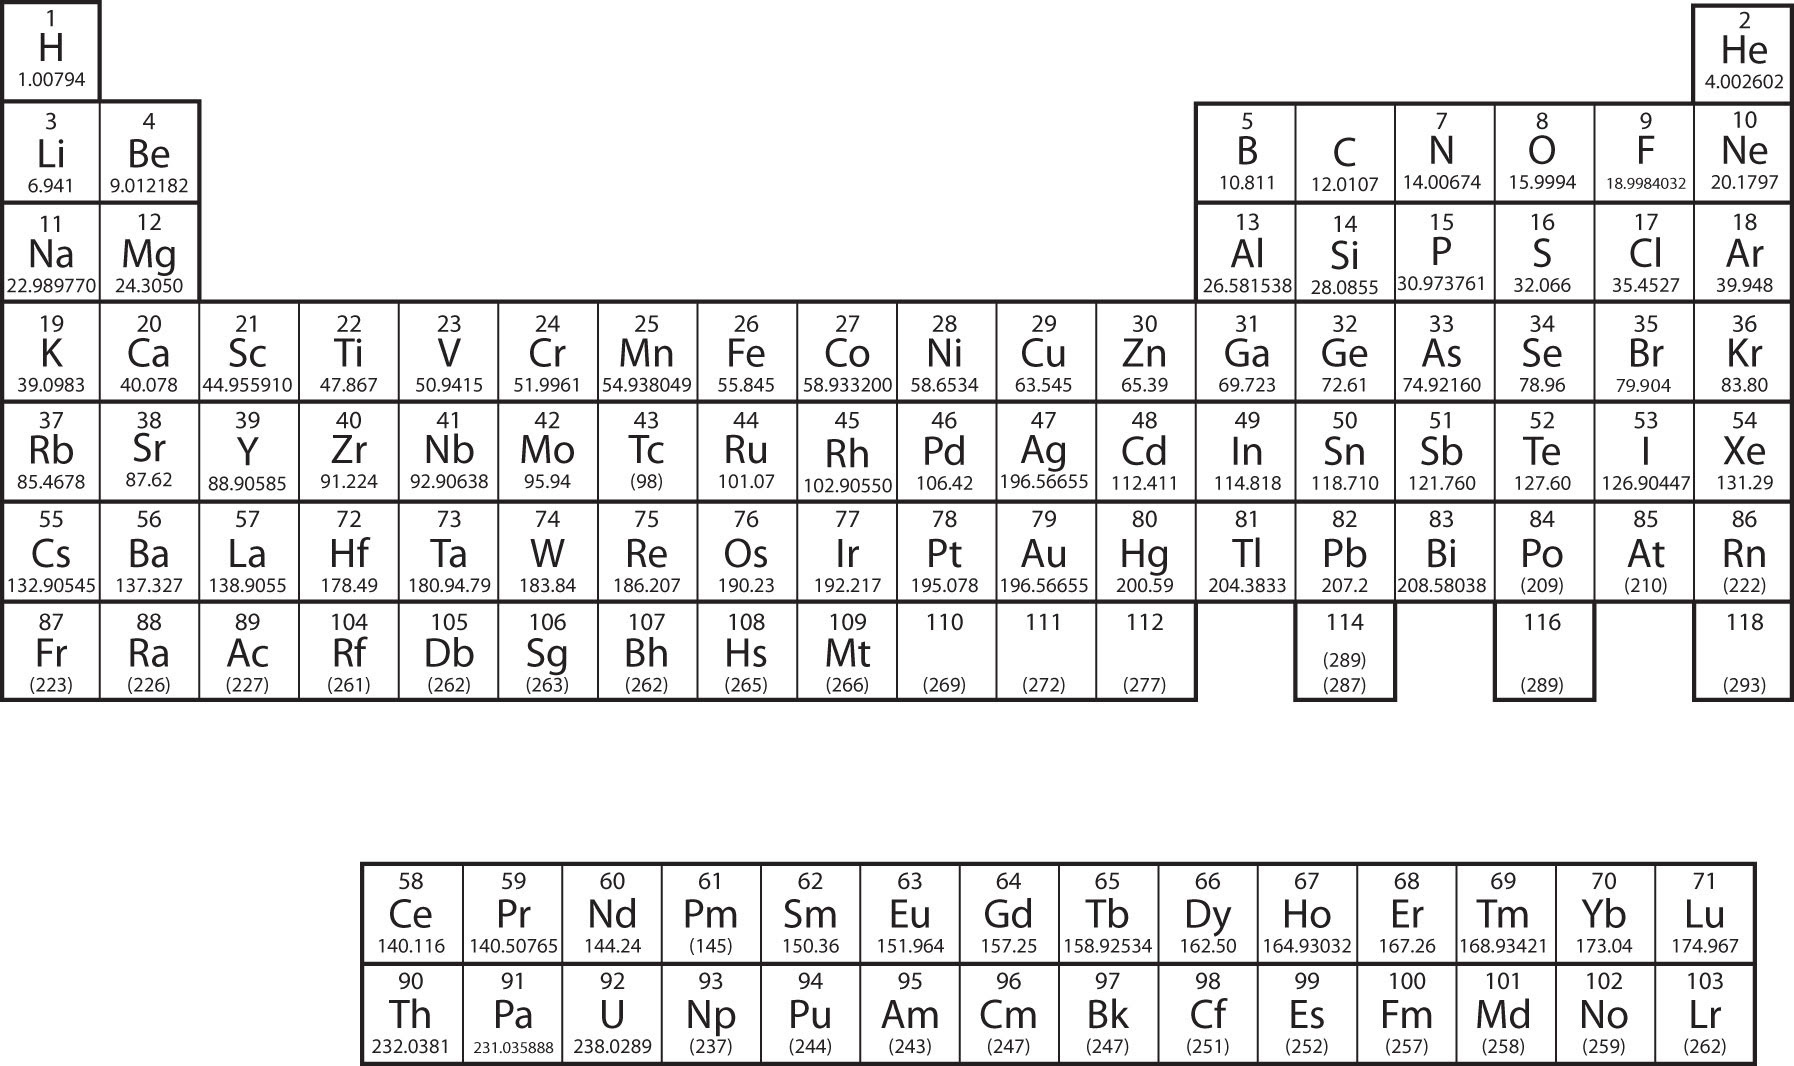 56 Periodic Table Mg Number Of Protons Mg Table Periodic Of Number